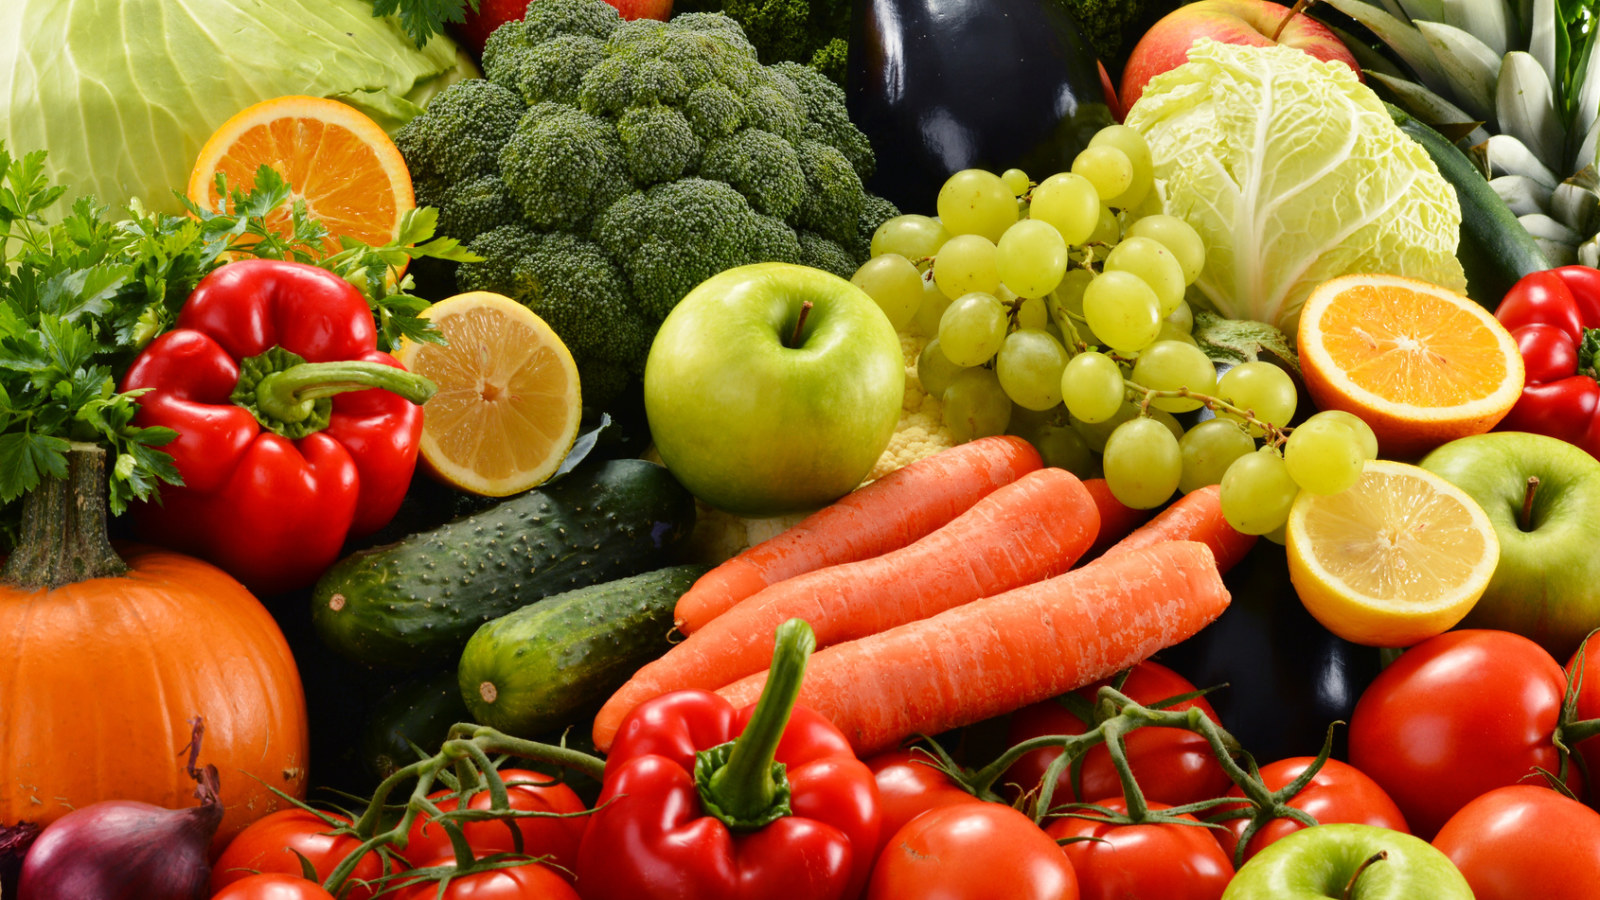 Healthy food, healthy habits, yoga and changes to lifestyle and eating habits, brain health, yoga and healthy habits to help prevent dementia